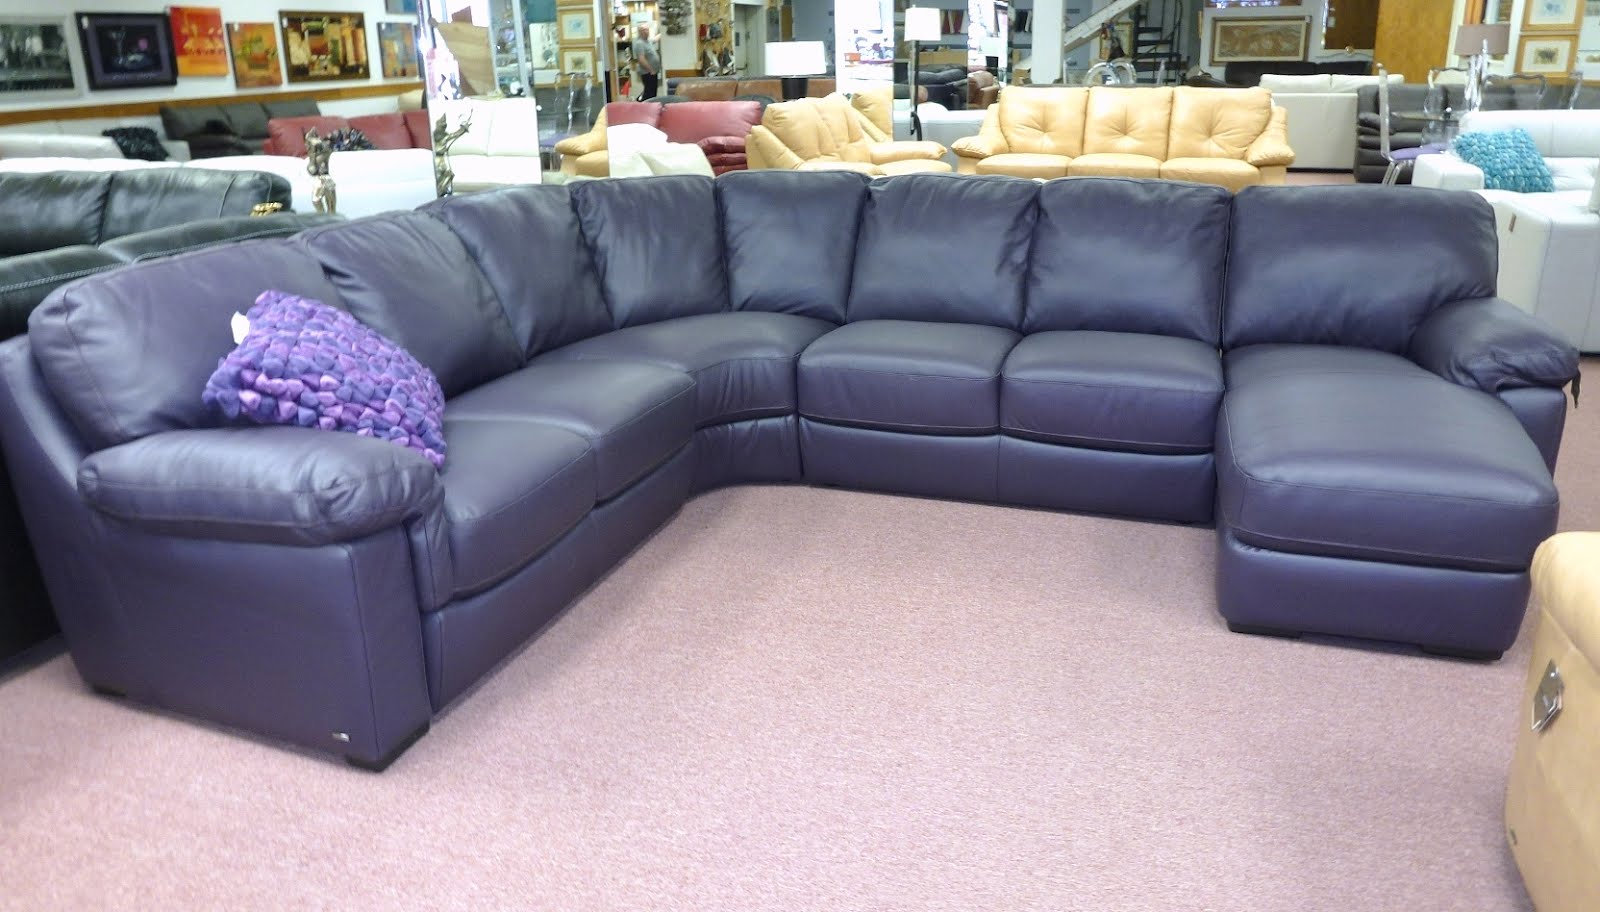 Natuzzi Leather Sofas amp Sectionals by Interior Concepts  : natuzzi purple leather sectional B626 from interiorconceptsfurniture.blogspot.com size 1600 x 912 jpeg 164kB